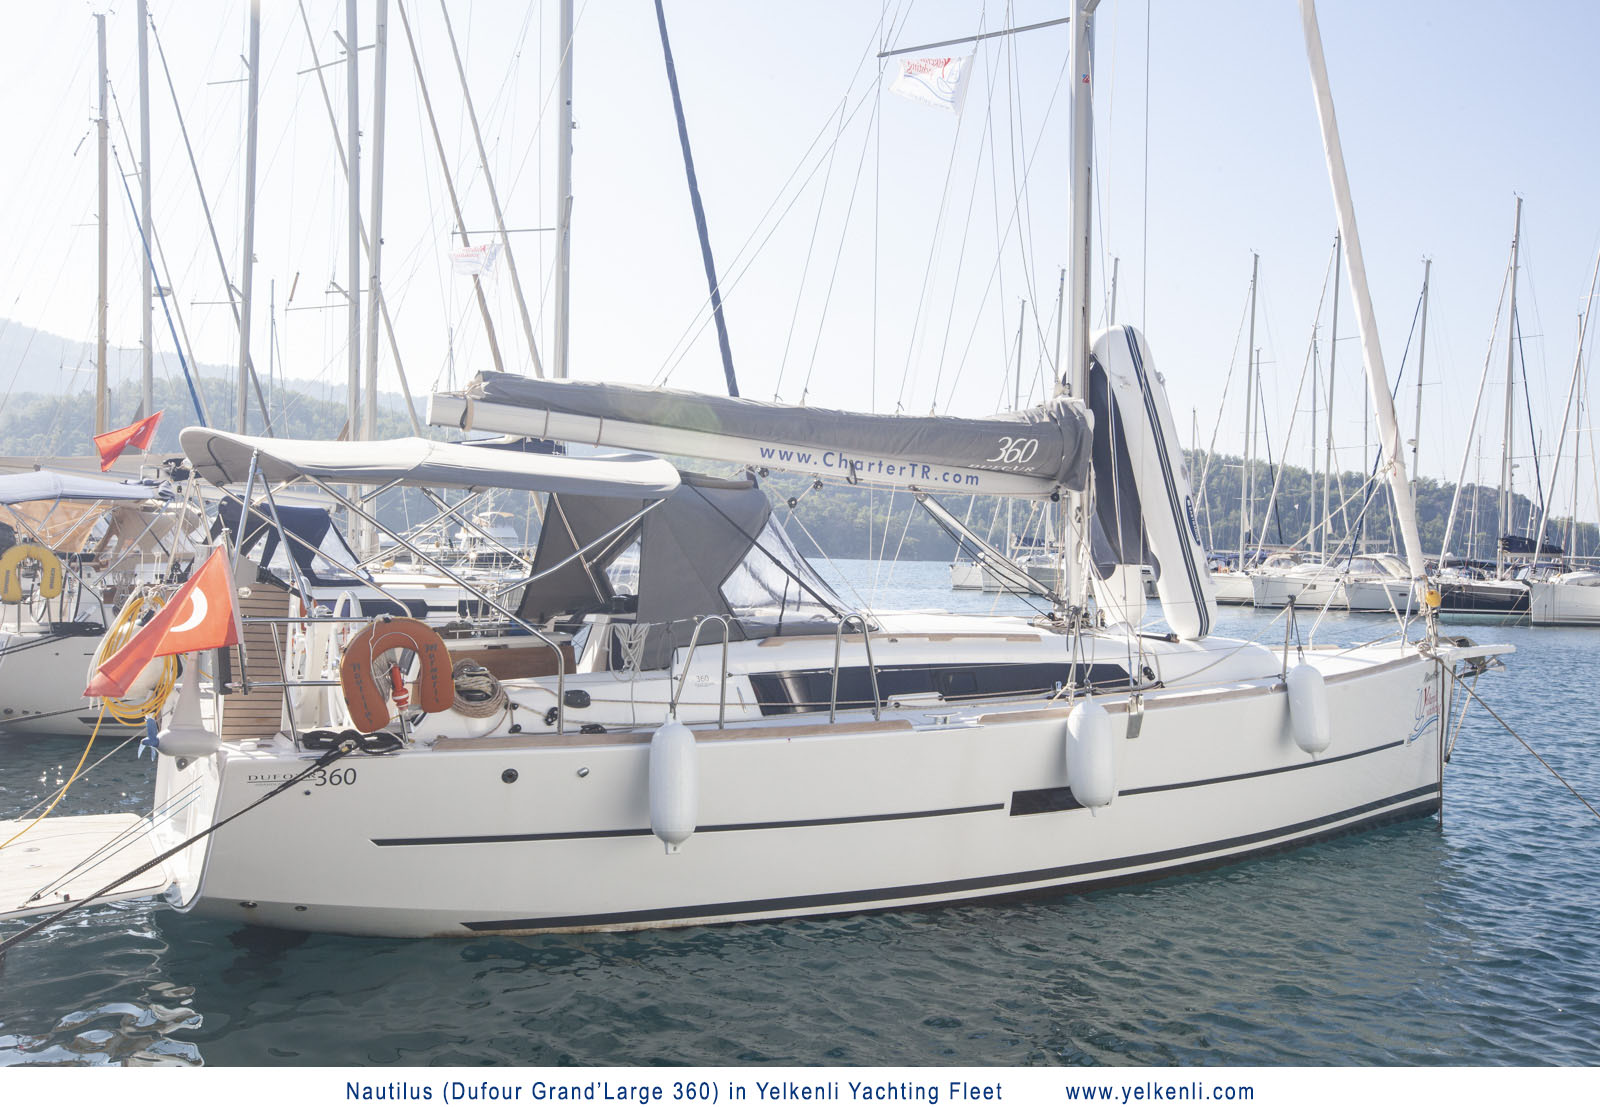 Dufour 360 GL (Nautilus) Starboard Side View - 5